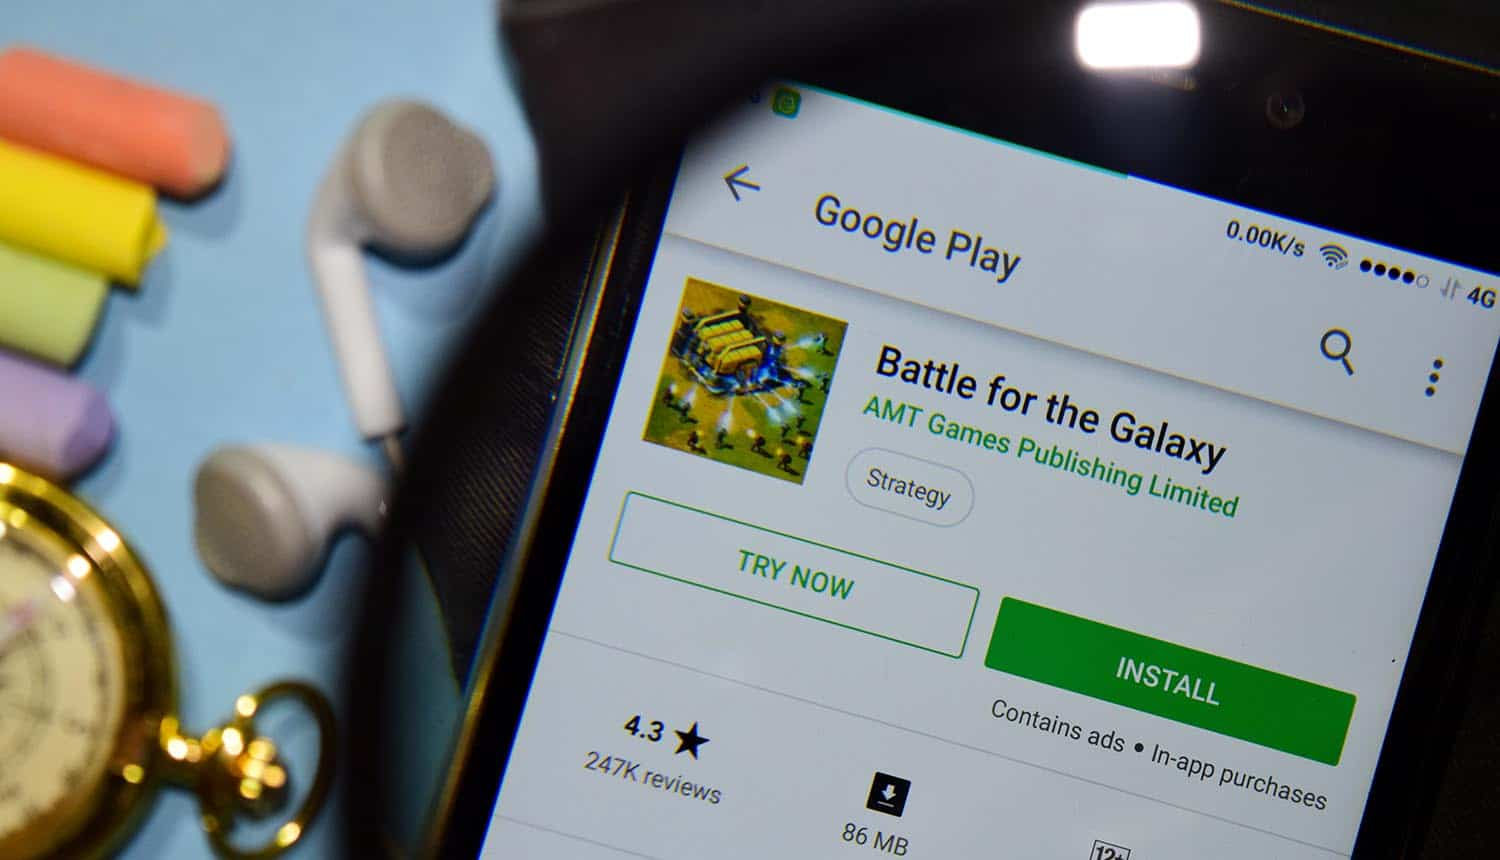 Battle for the Galaxy app with on smartphone screen showing game developer data leak